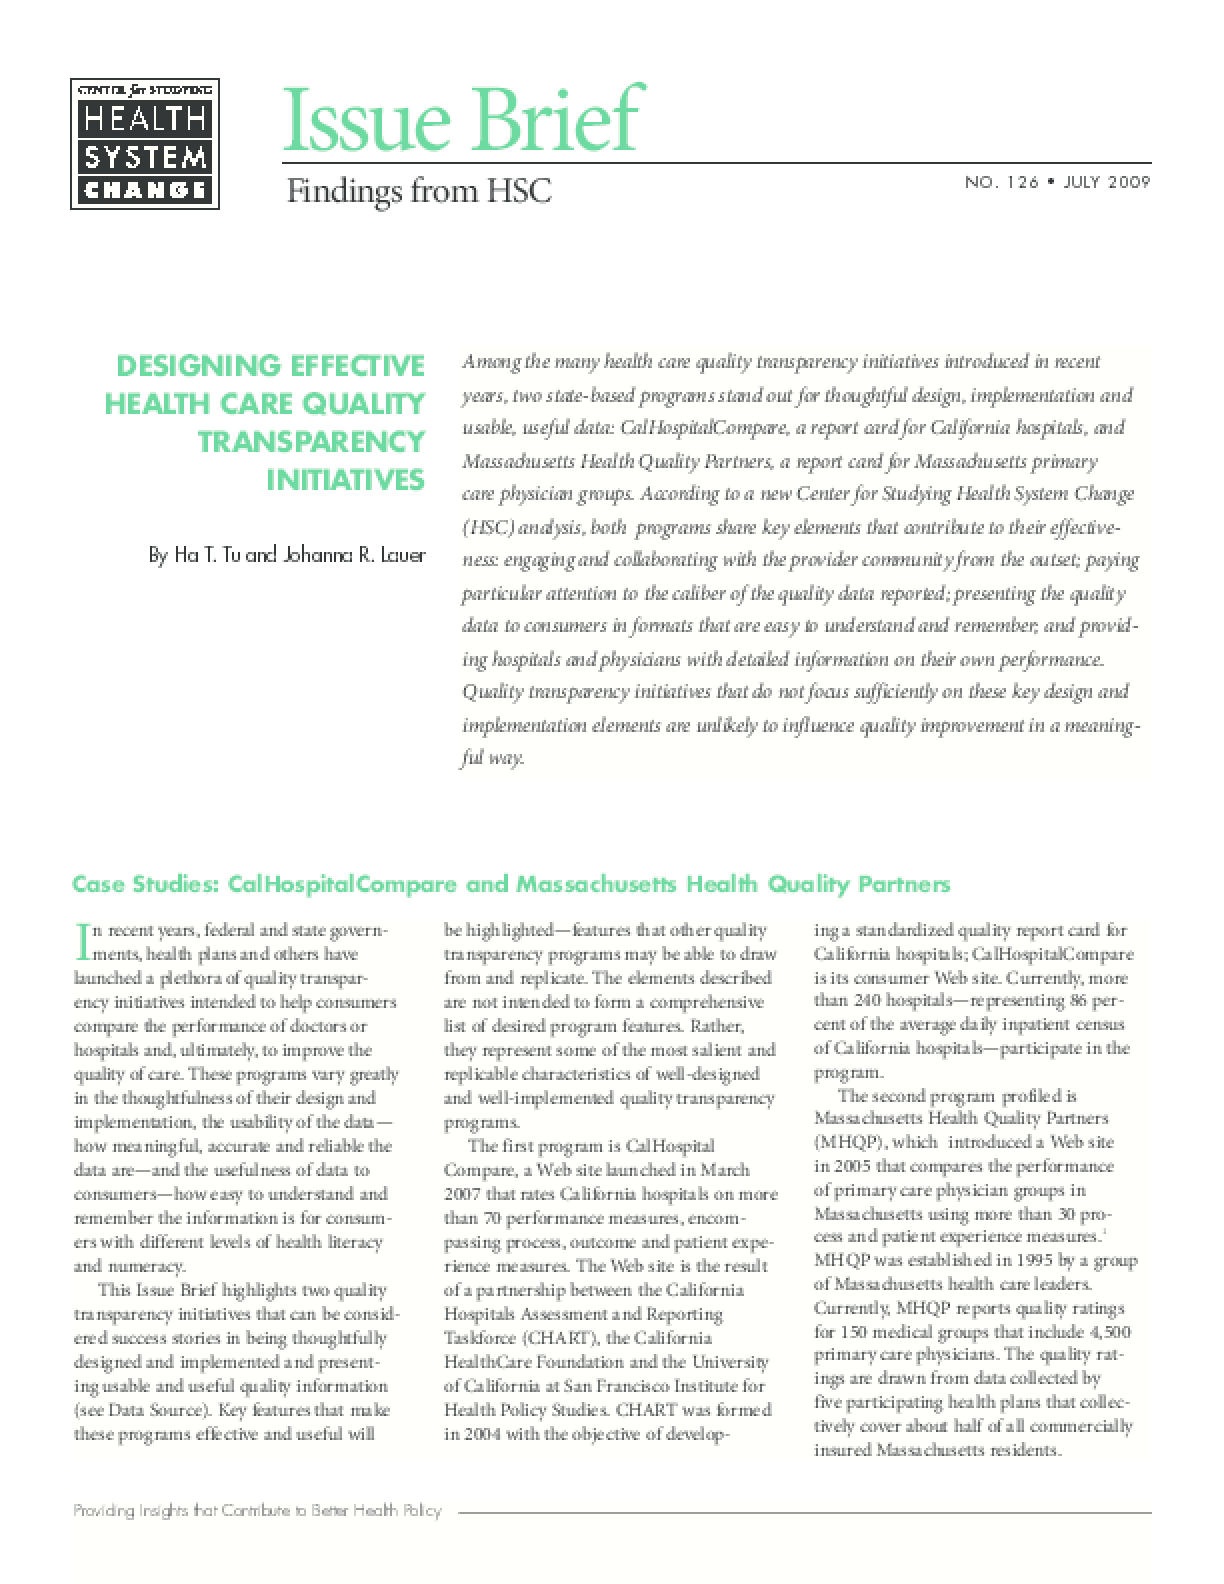 Designing Effective Health Care Quality Transparency Initiatives